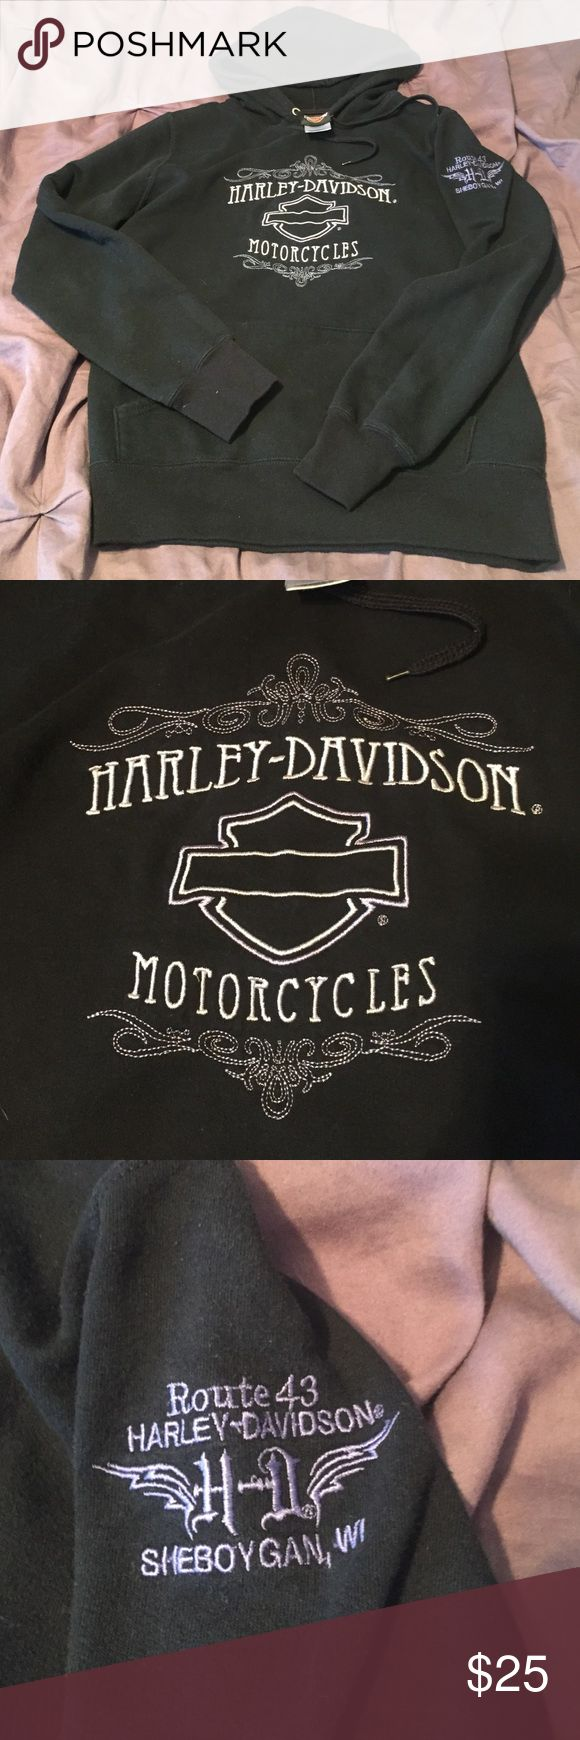 Purple Detail Harley Davidson Sweatshirt Perfect condition beautiful Harley Sweatshirt. I've never seen another woman with this Sweatshirt. Back is plain. Love this but is not too small for me. Offers welcome! Harley-Davidson Tops Sweatshirts & Hoodies